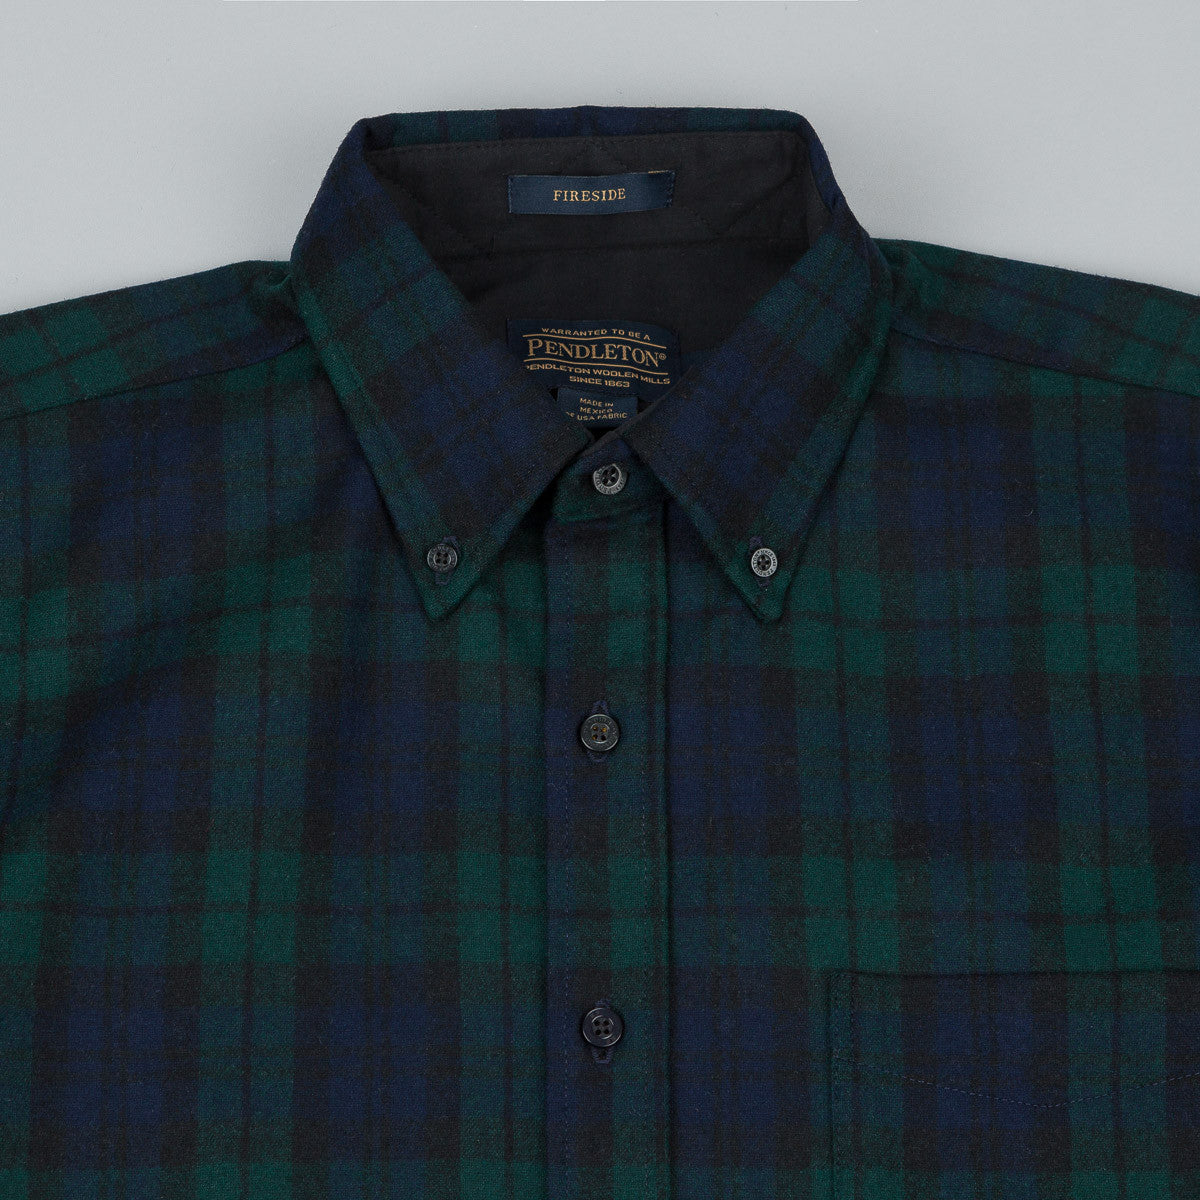 Pendleton Fireside Button Down Shirt - Tartan